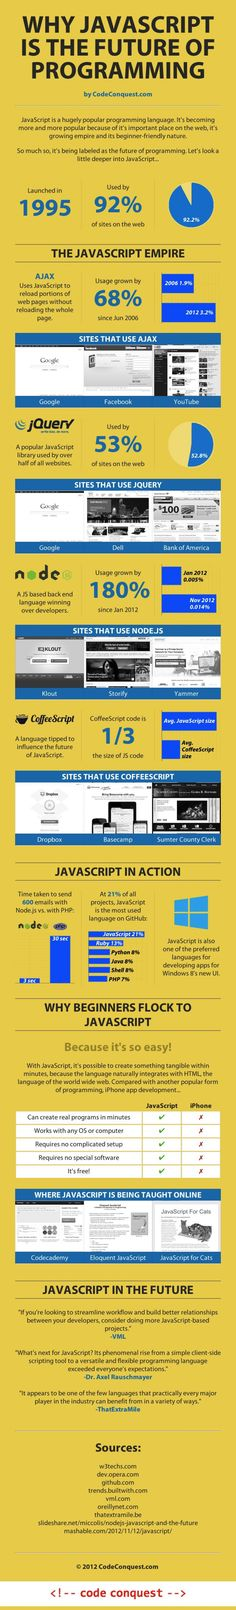 Why Java Script is the Future of Programming.